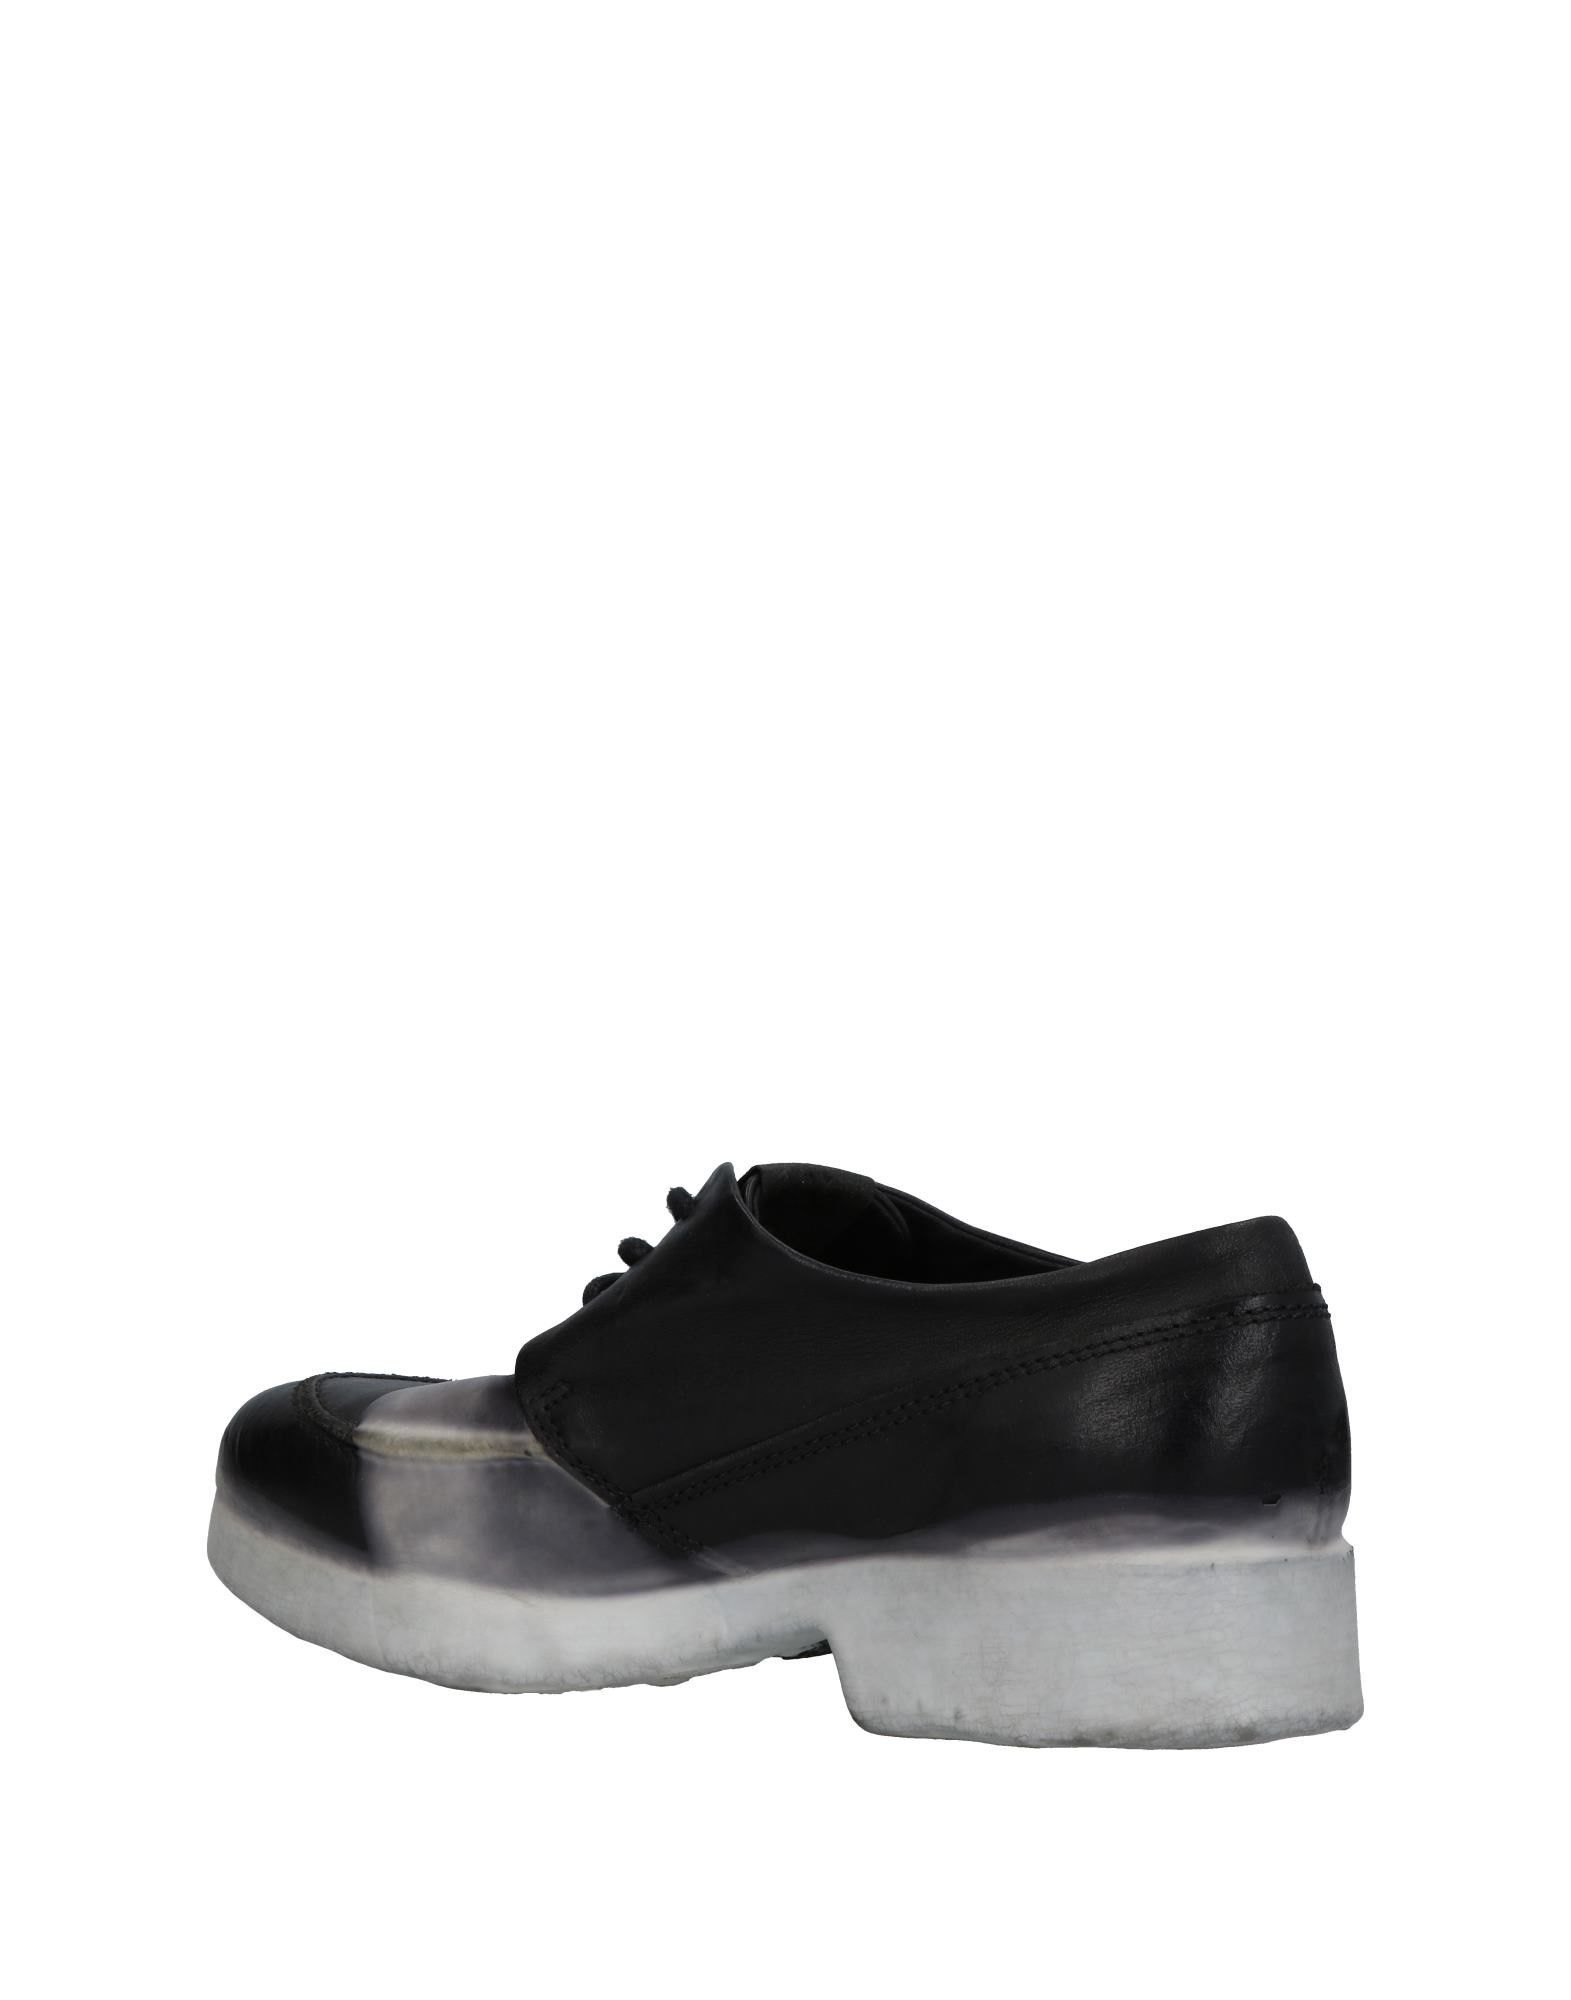 Chaussures - Chaussures À Lacets Oxs aFxhxpgIp